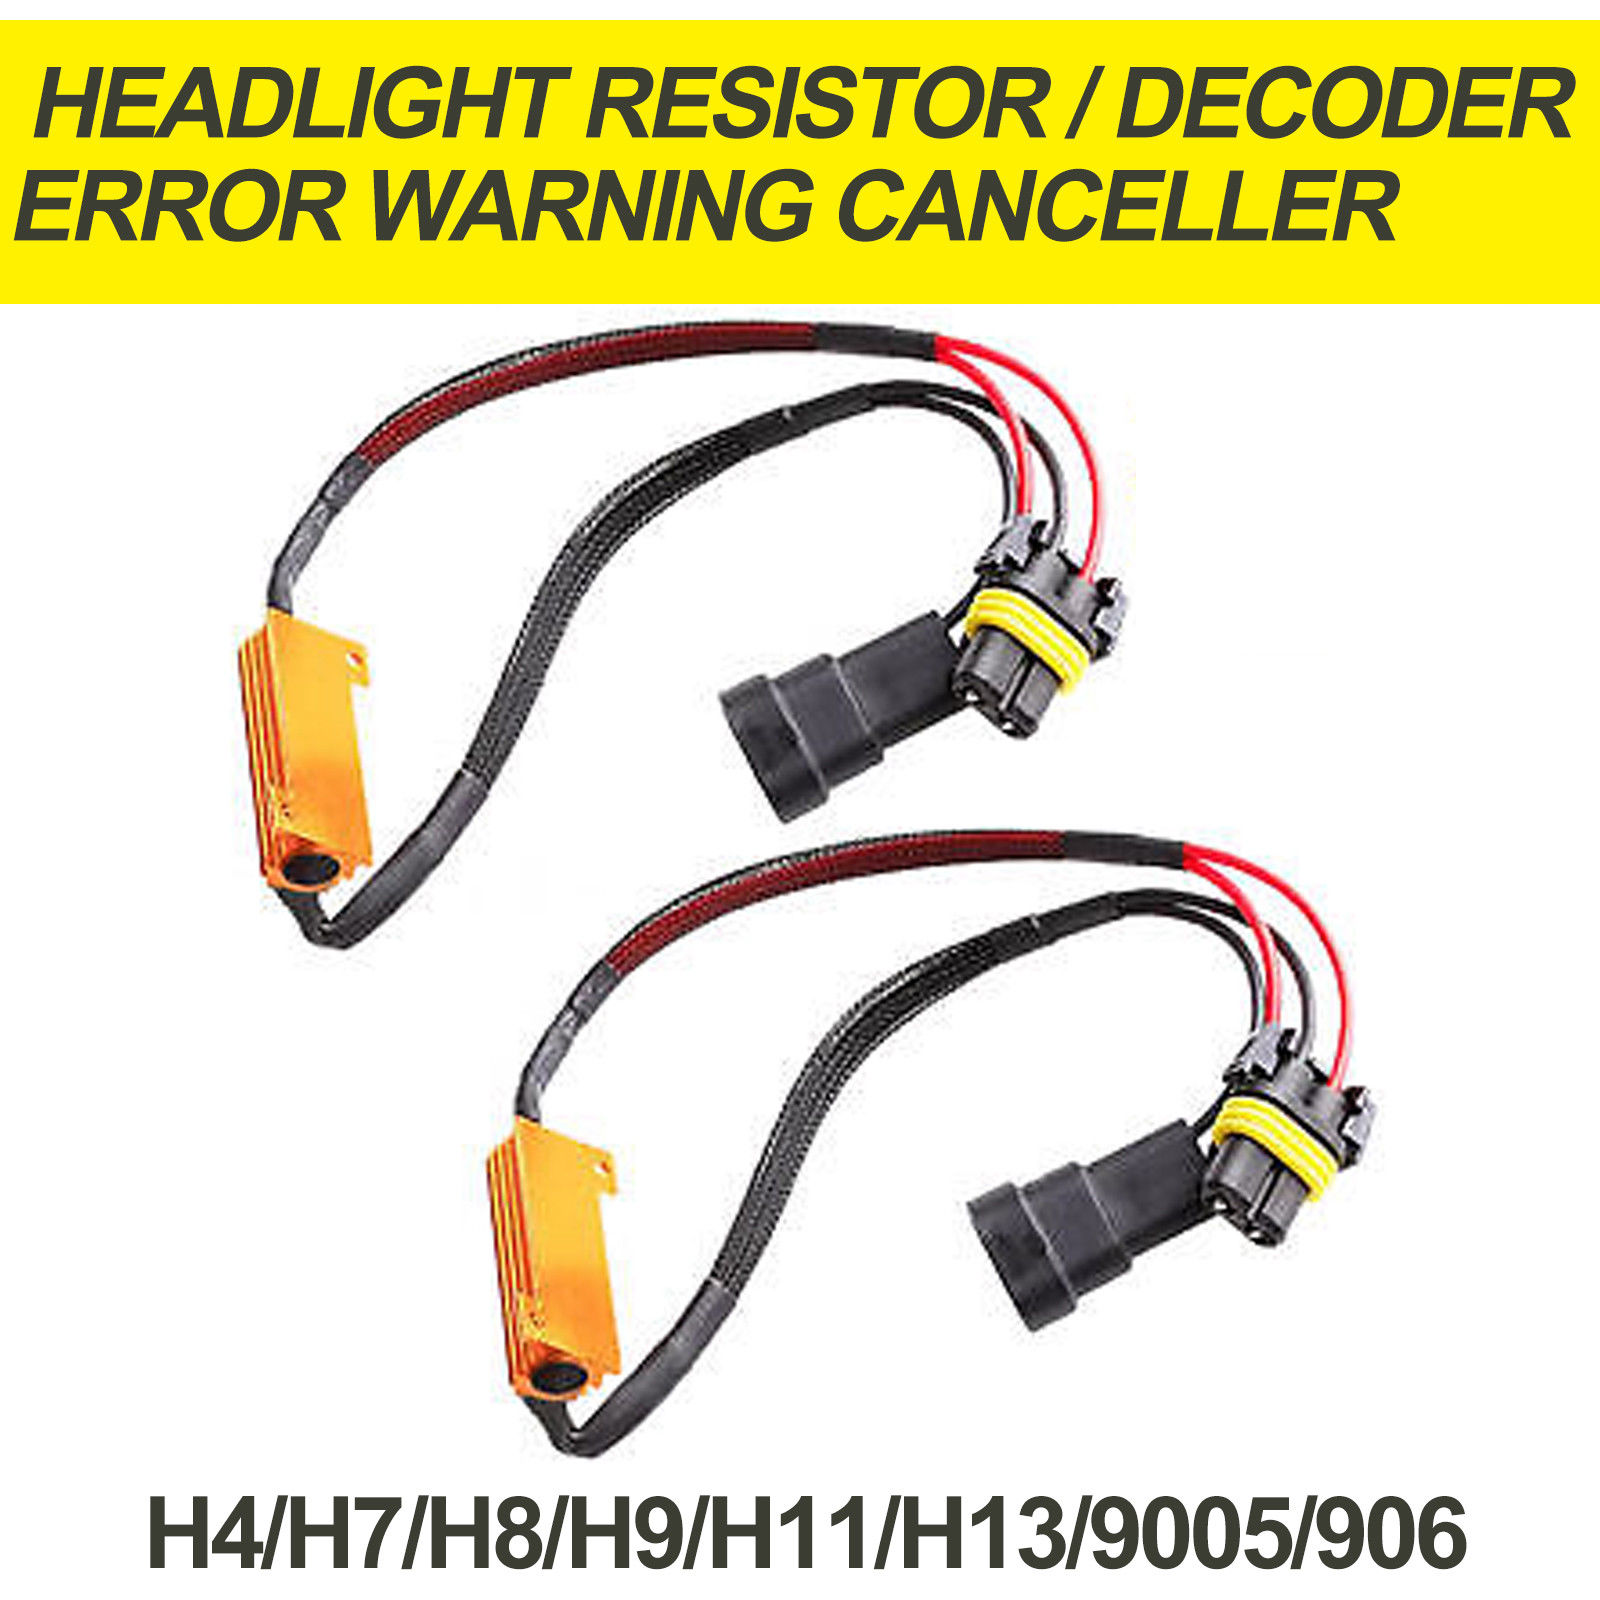 LED Foglight Headlight Load Resistor Flicker Decoder Warning Canceler H4 H7 9006